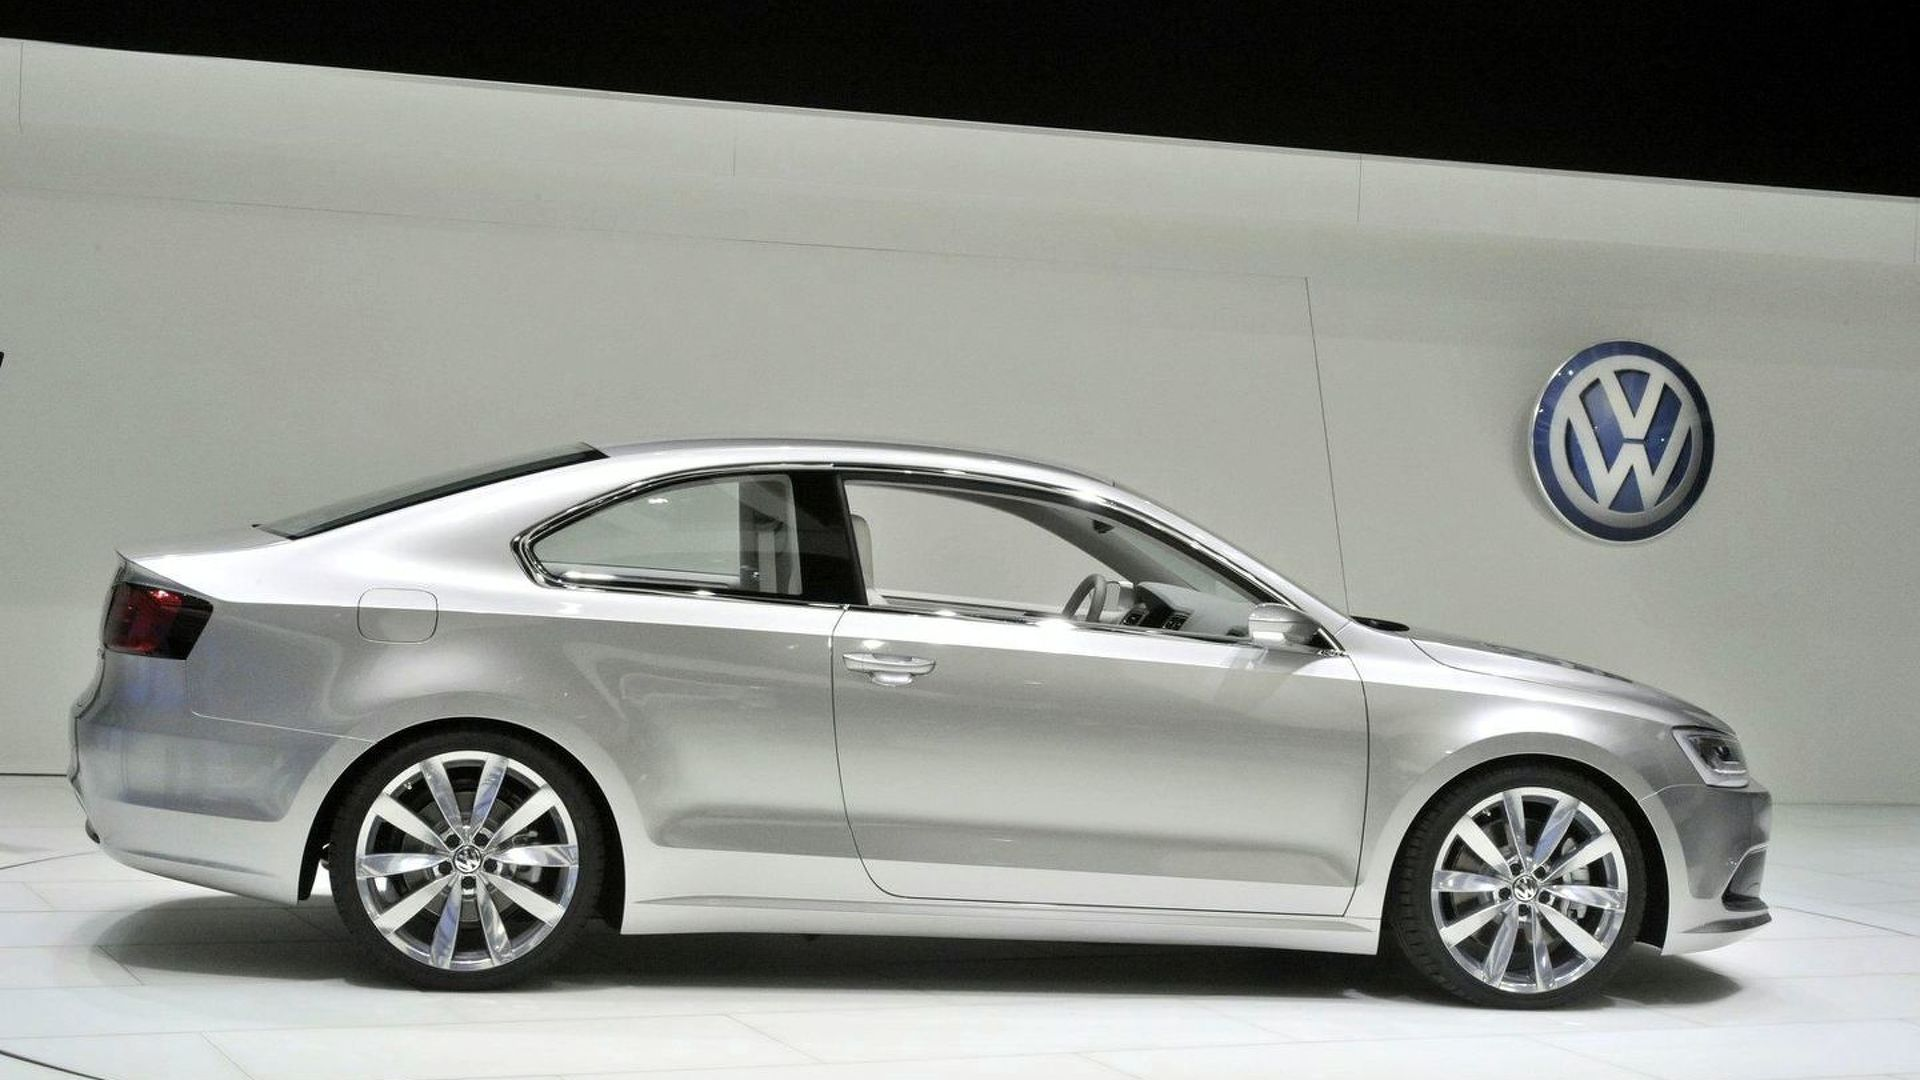 2011 VW Jetta R Sport Version Being Considered for U.S. - report